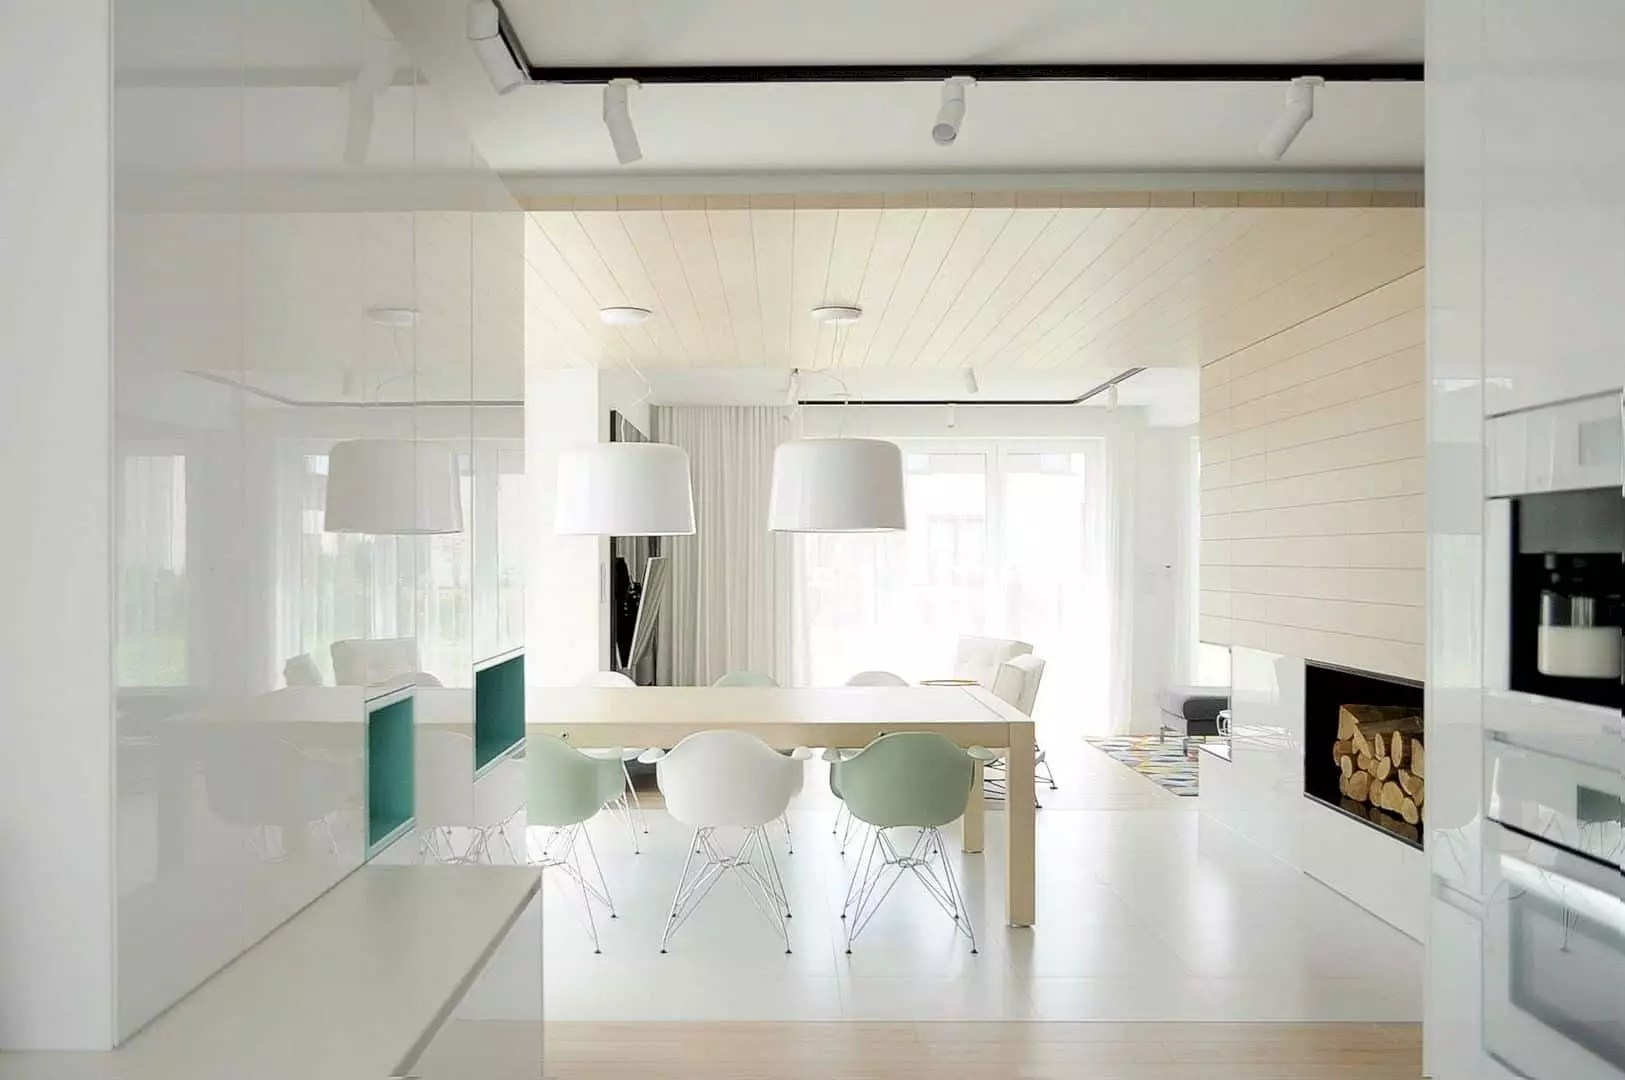 Dom Tarn Gory: Elegant Interior of A House with Remarkable Open Space